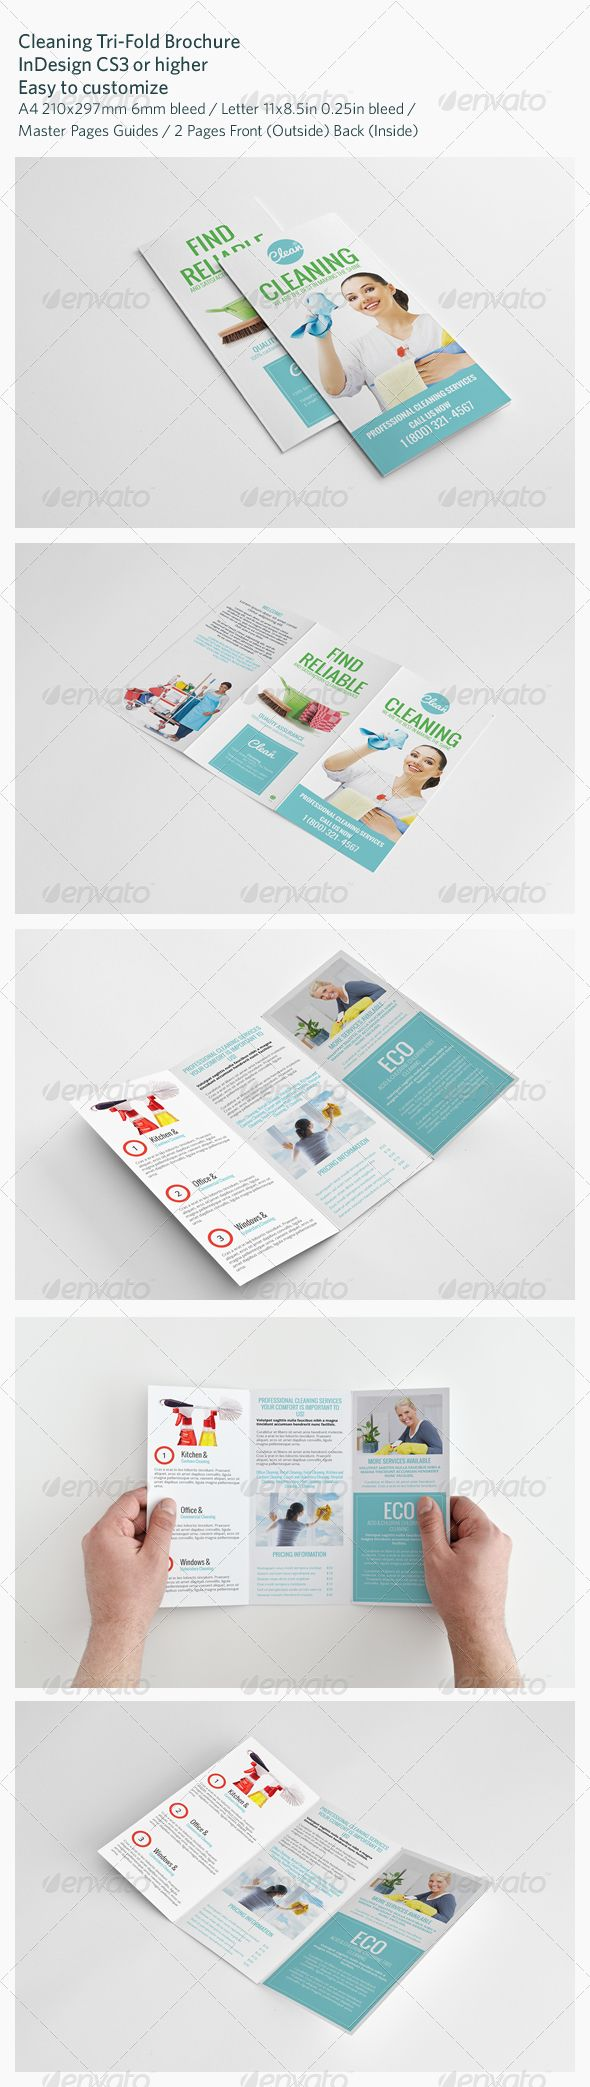 Cleaning TriFold Brochure Tri Fold Brochure Brochures And - Tri fold brochure indesign template